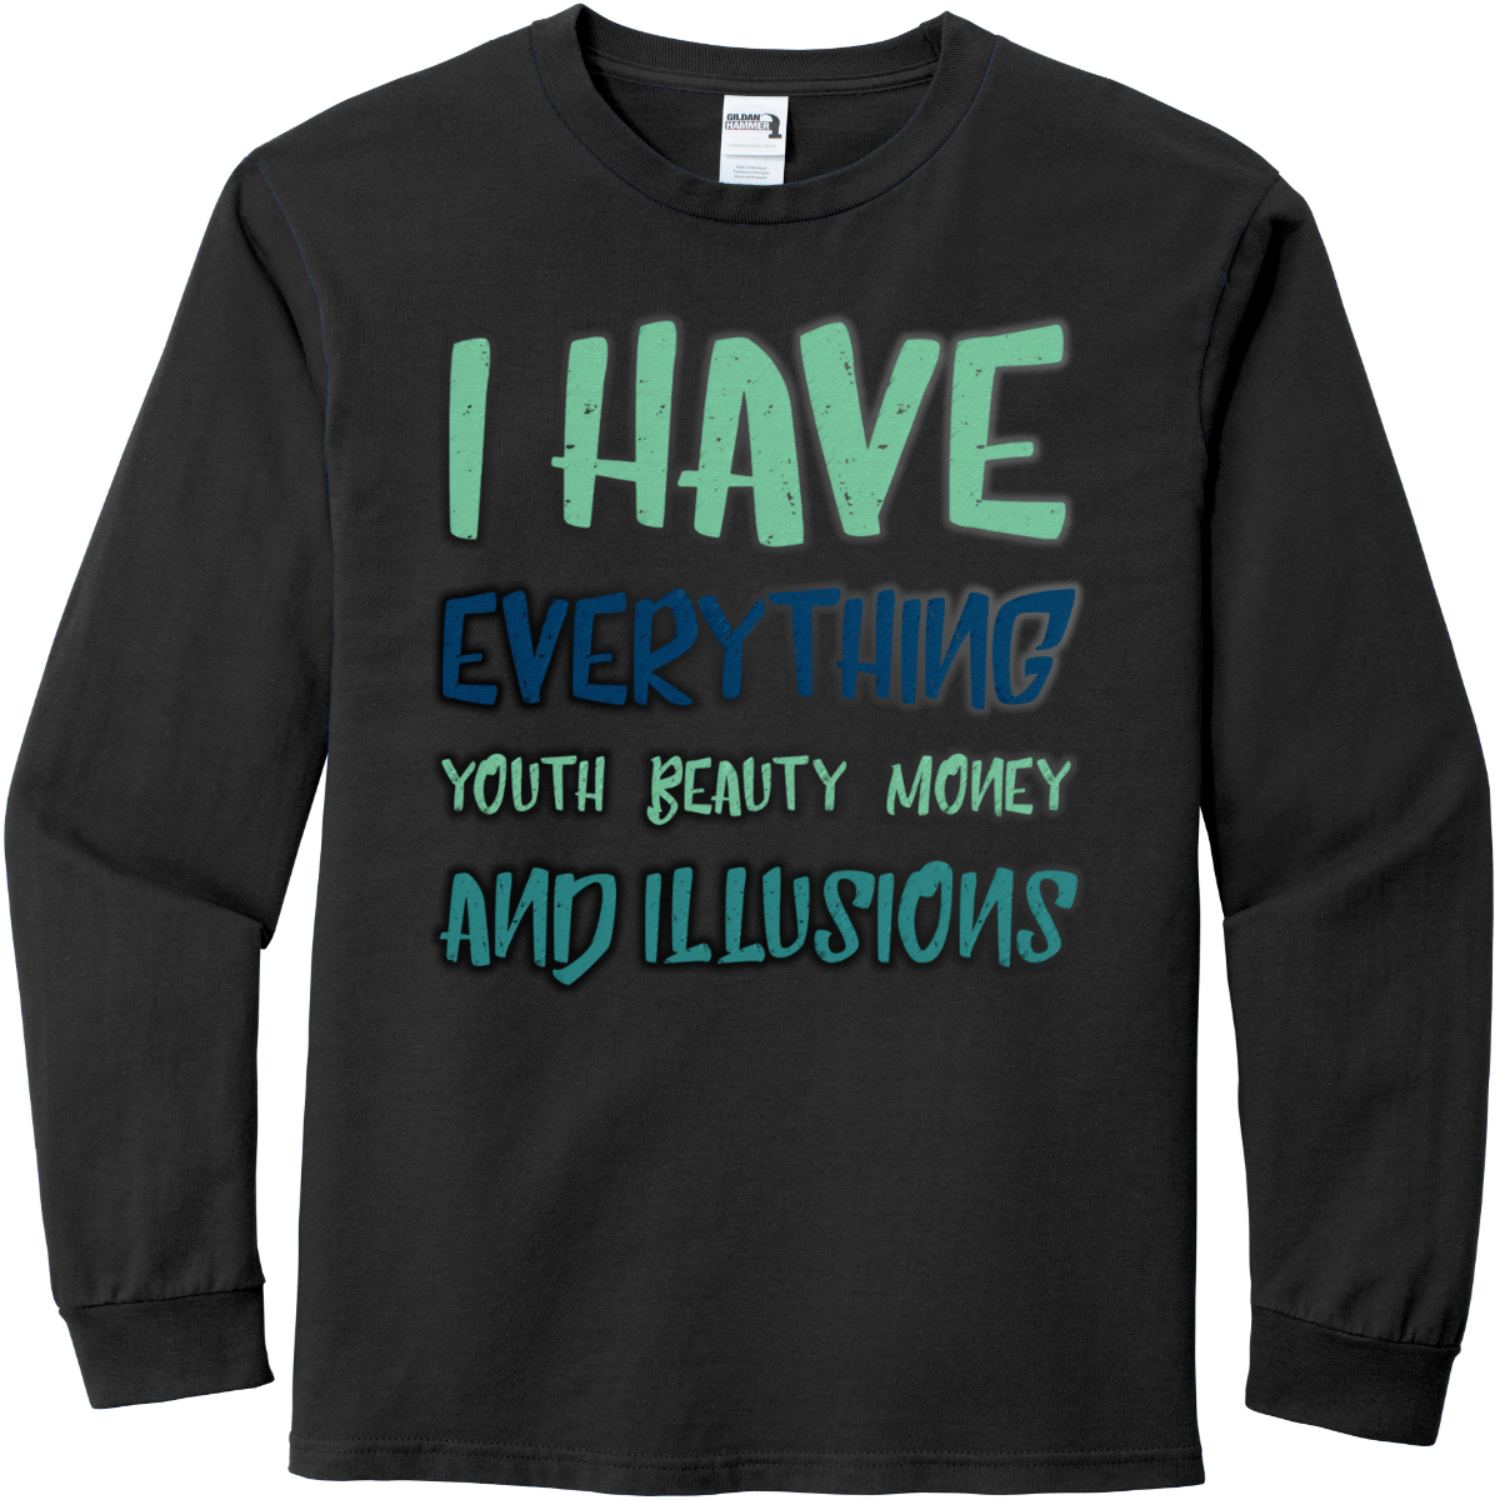 I have everything Black Gildan Hammer Long Sleeve T Shirt